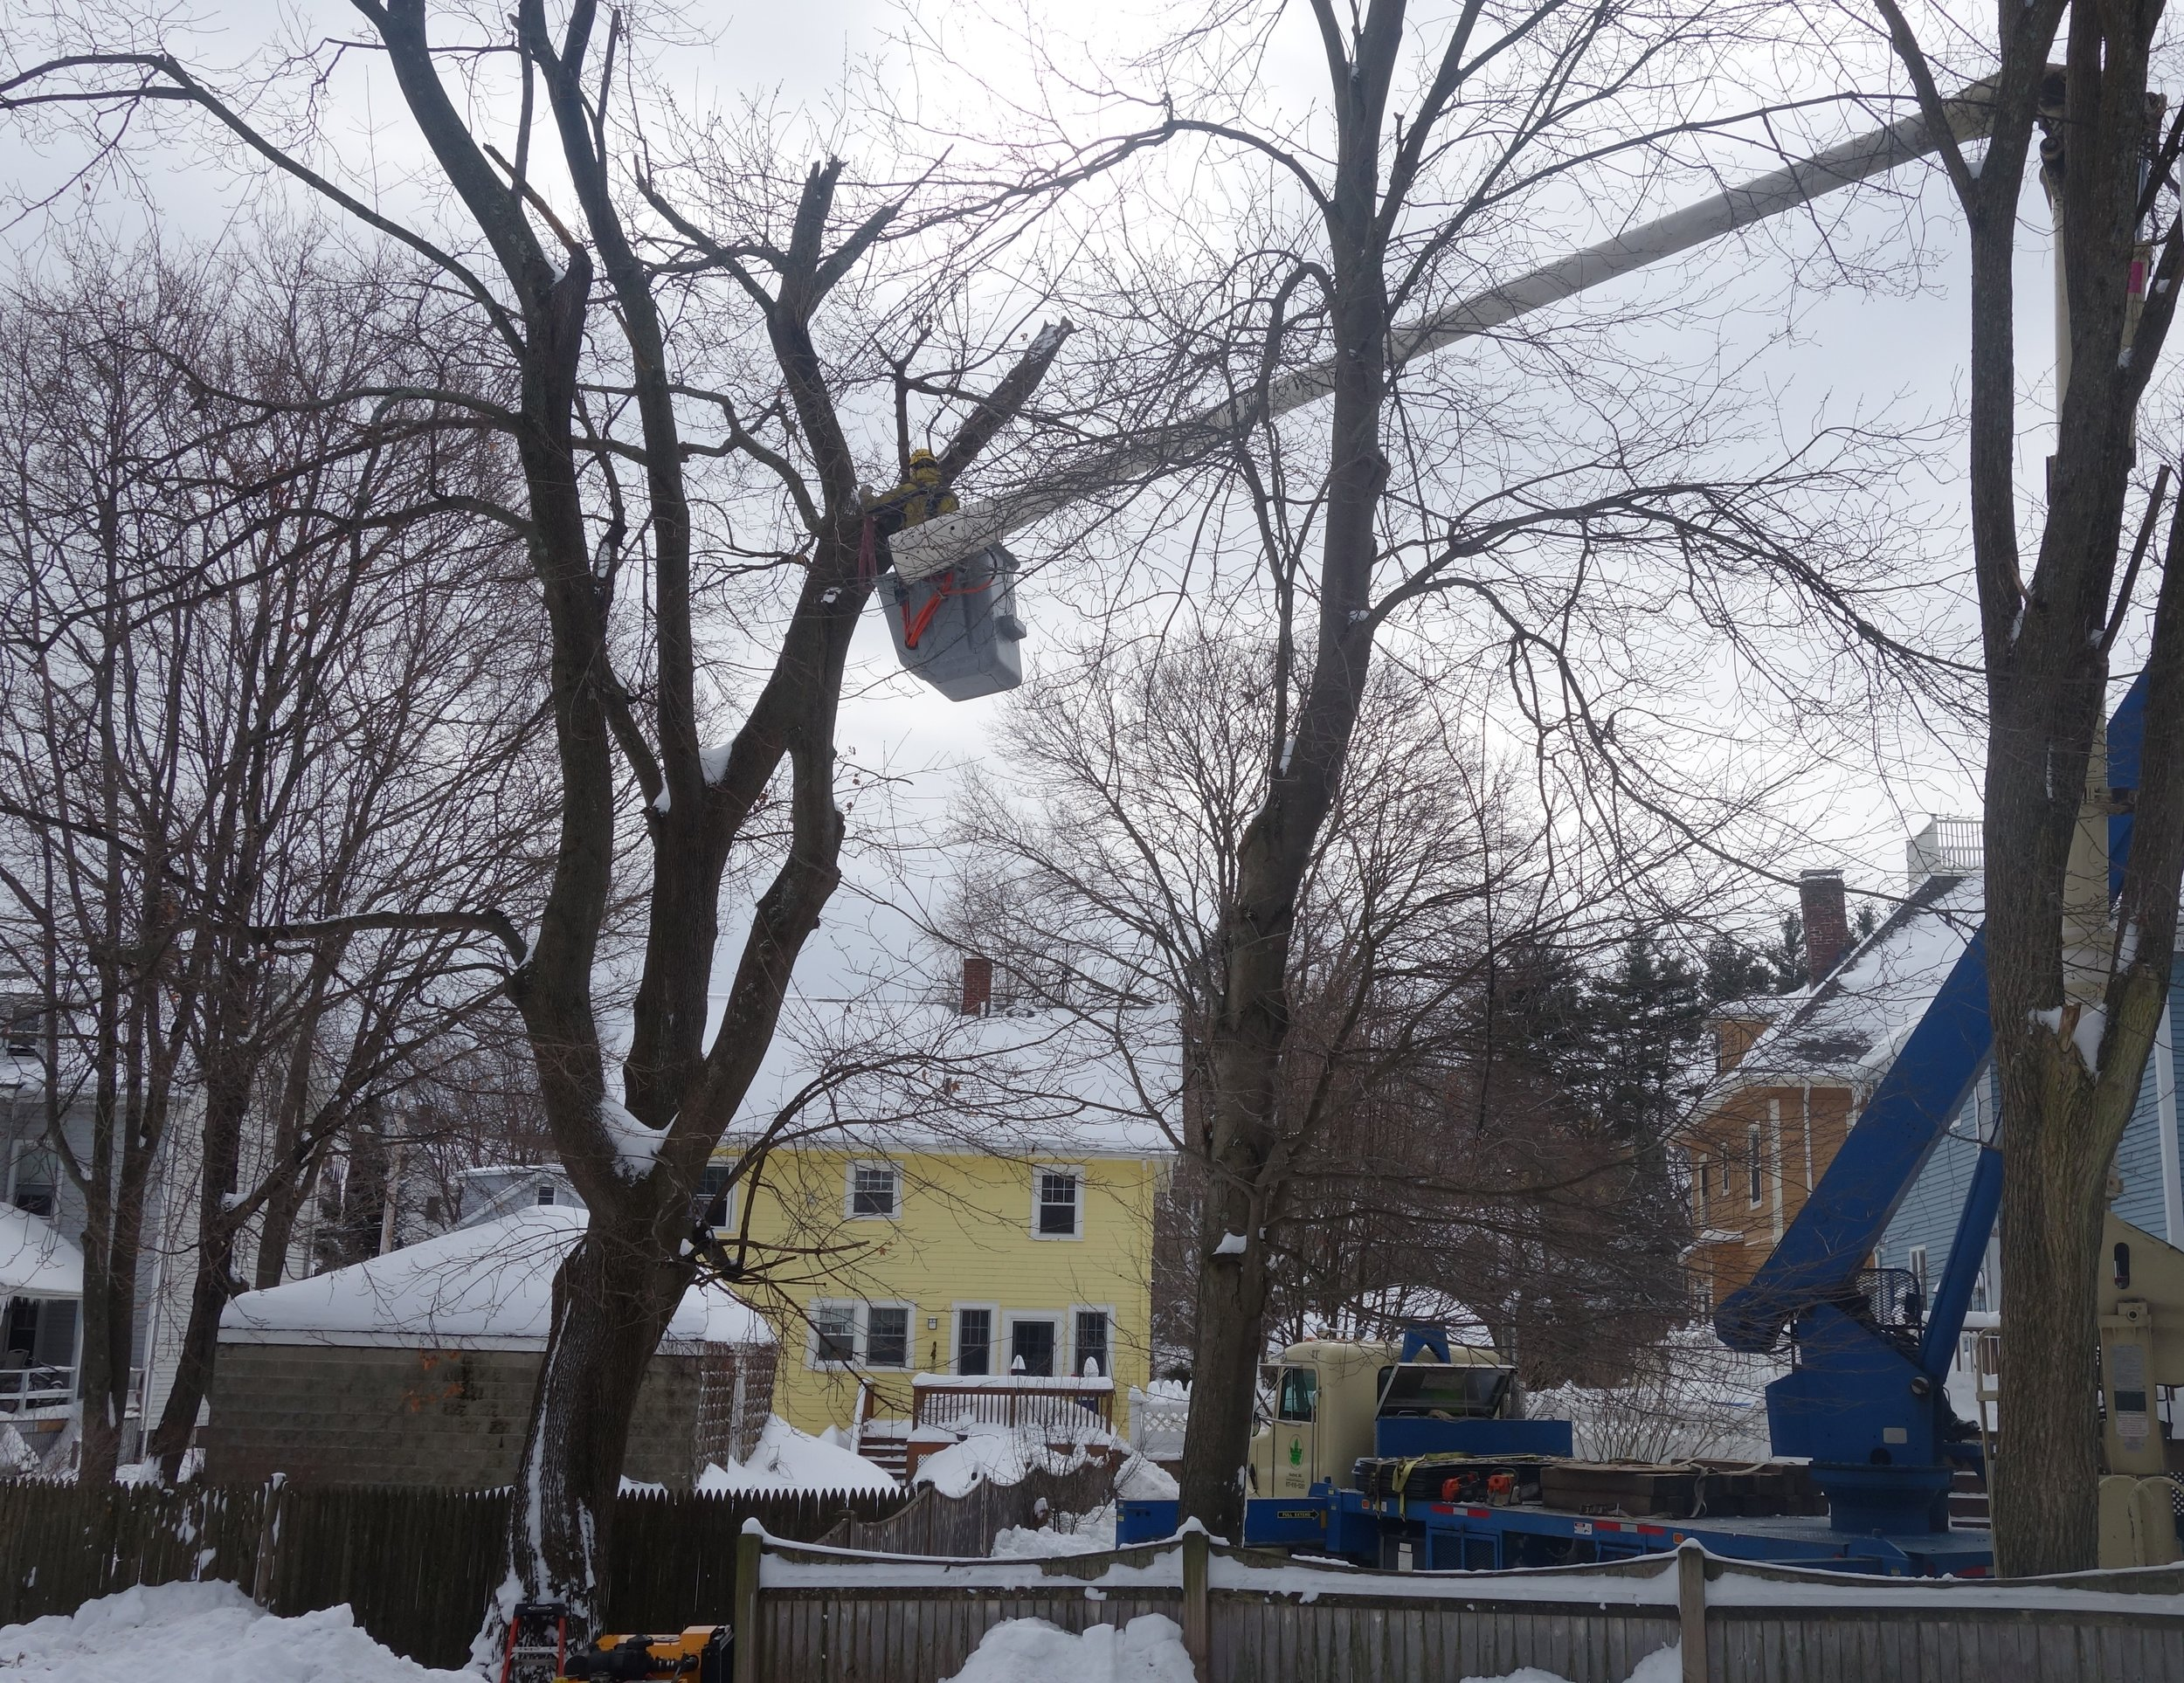 Taking advantage of wintertime temperatures provides firm ground often increasing access for equipment allowing large tree work to proceed efficiently.